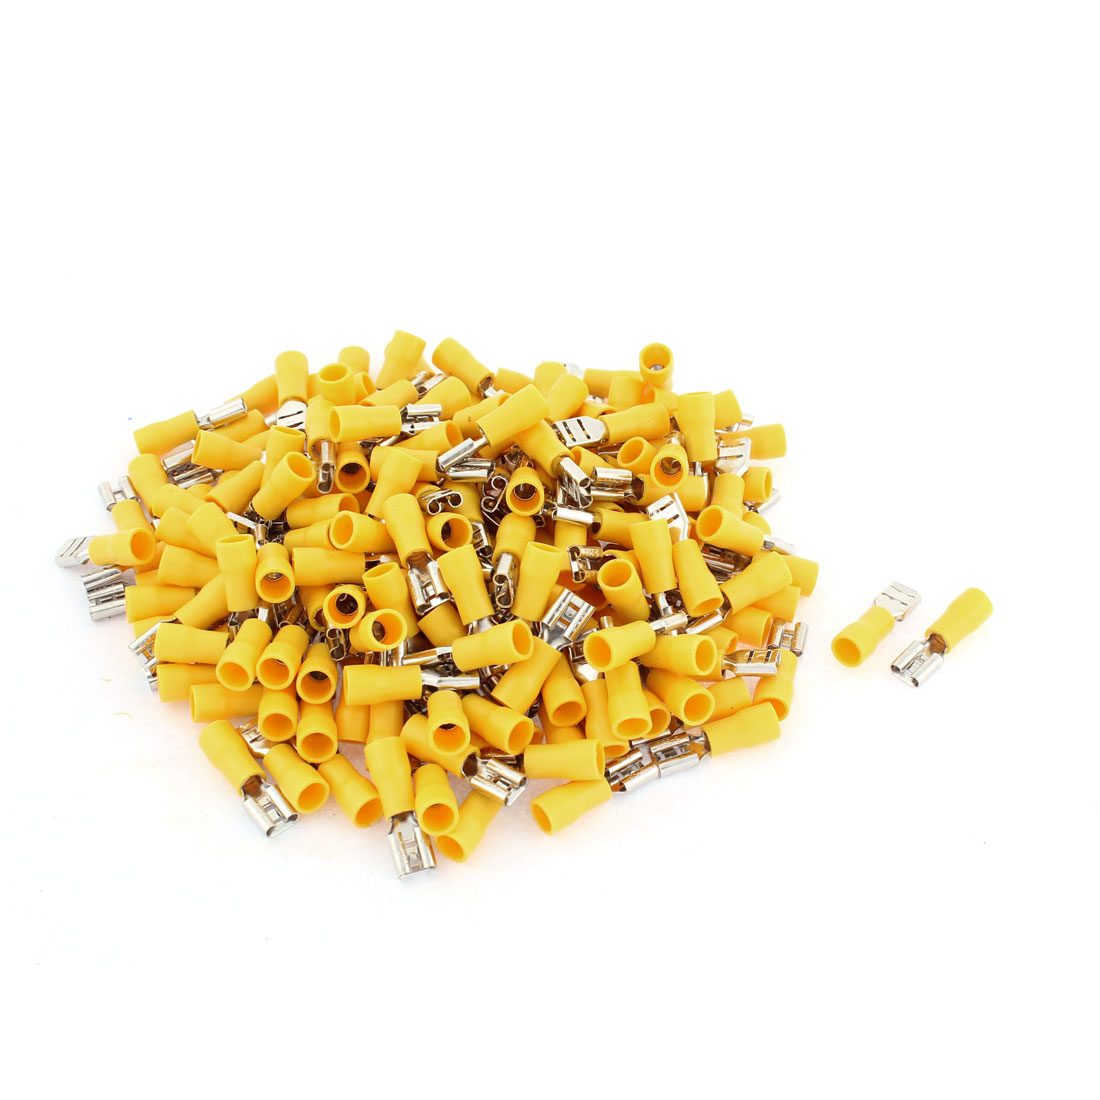 187Pcs FDD5.5-250 4-6mm2 Wire Yellow PVC Sleeve Female Insulated Terminal